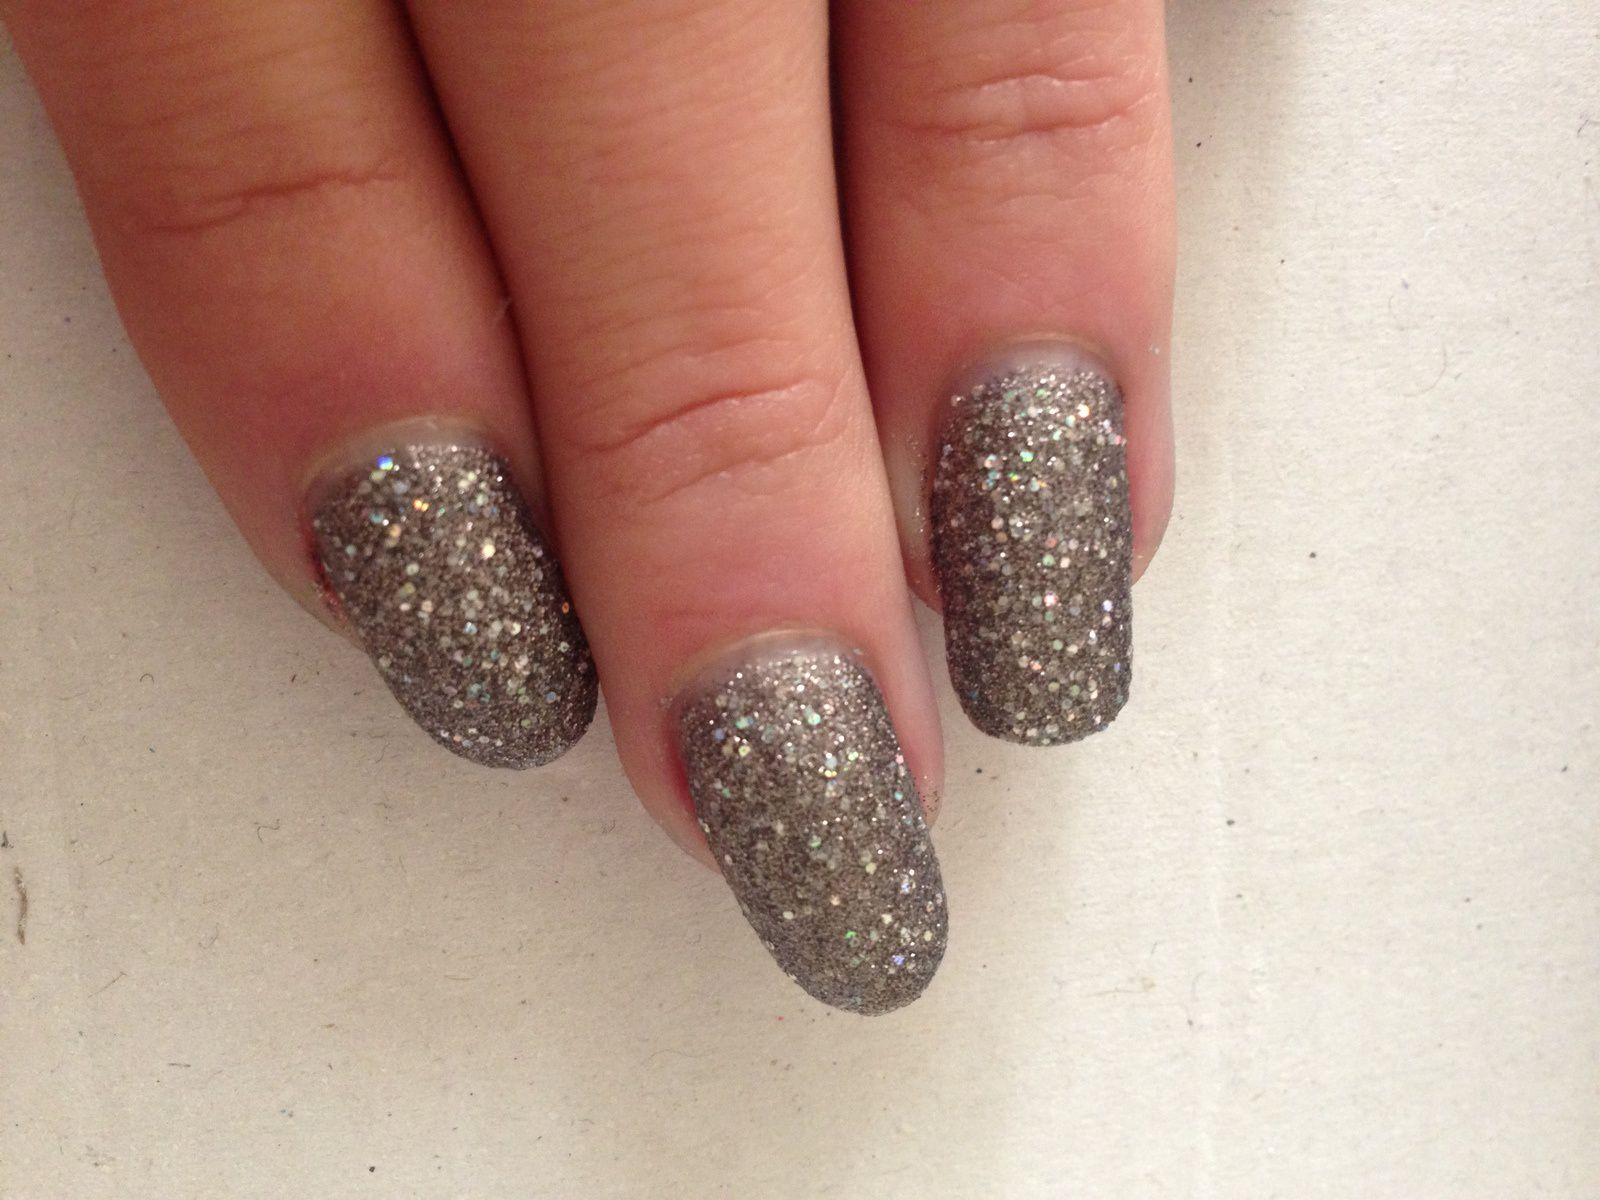 Nails Inc - Sloane Square + Nail art